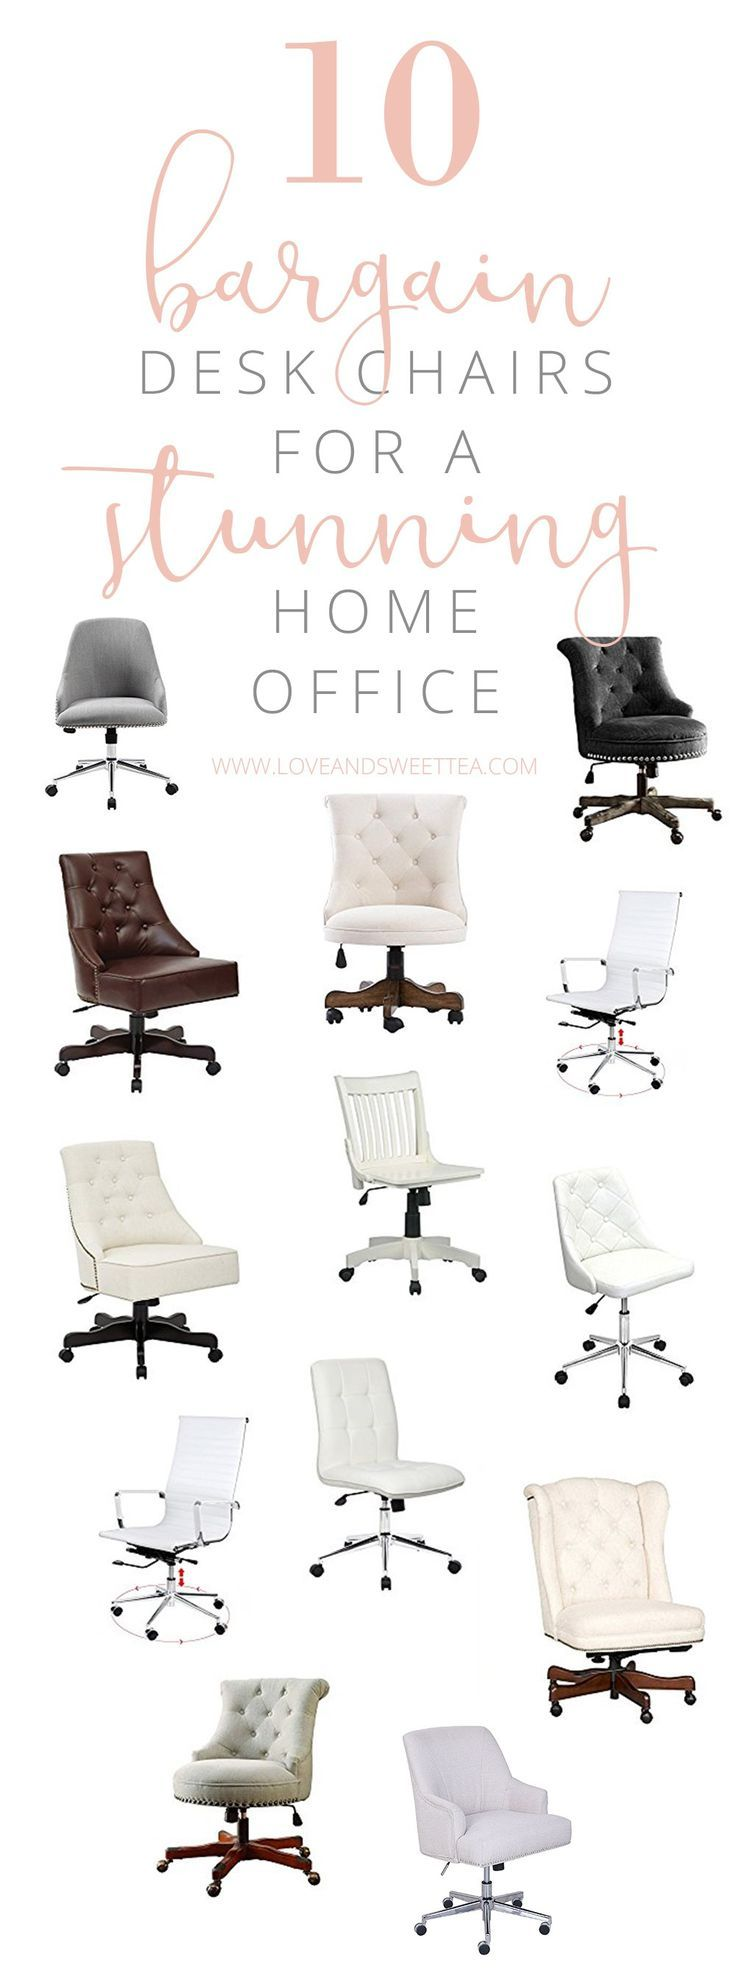 Add those two things together (pretty desk chair + comfortable desk chair), and you bet I'm doing some intense shopping around for my next desk chair!  I thought I'd compile a list of some of my favorite feminine desk chairs to save you some time on the hunt. (Because, let's be honest, I'm all about staying productive and meeting your goals!!)  The best part? My budget is as low as possible, so all these desk chairs are under $250! Awesome right? I know!  Click on over to see what I found!